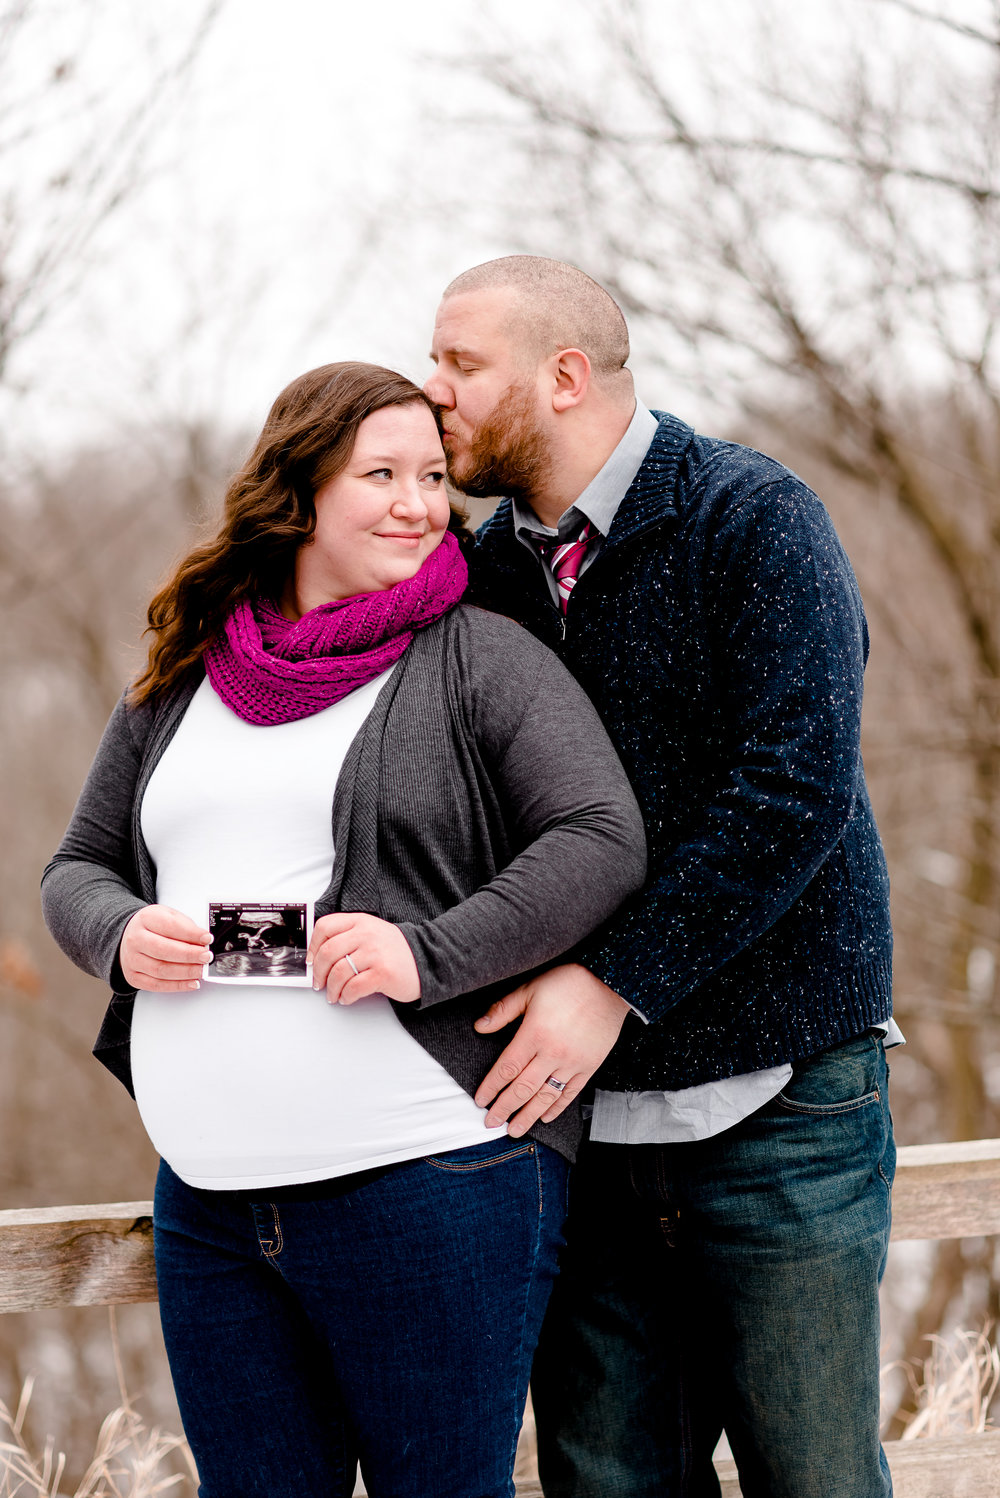 Twin Cities Maternity Photographer - Couple with Ultrasound Photo